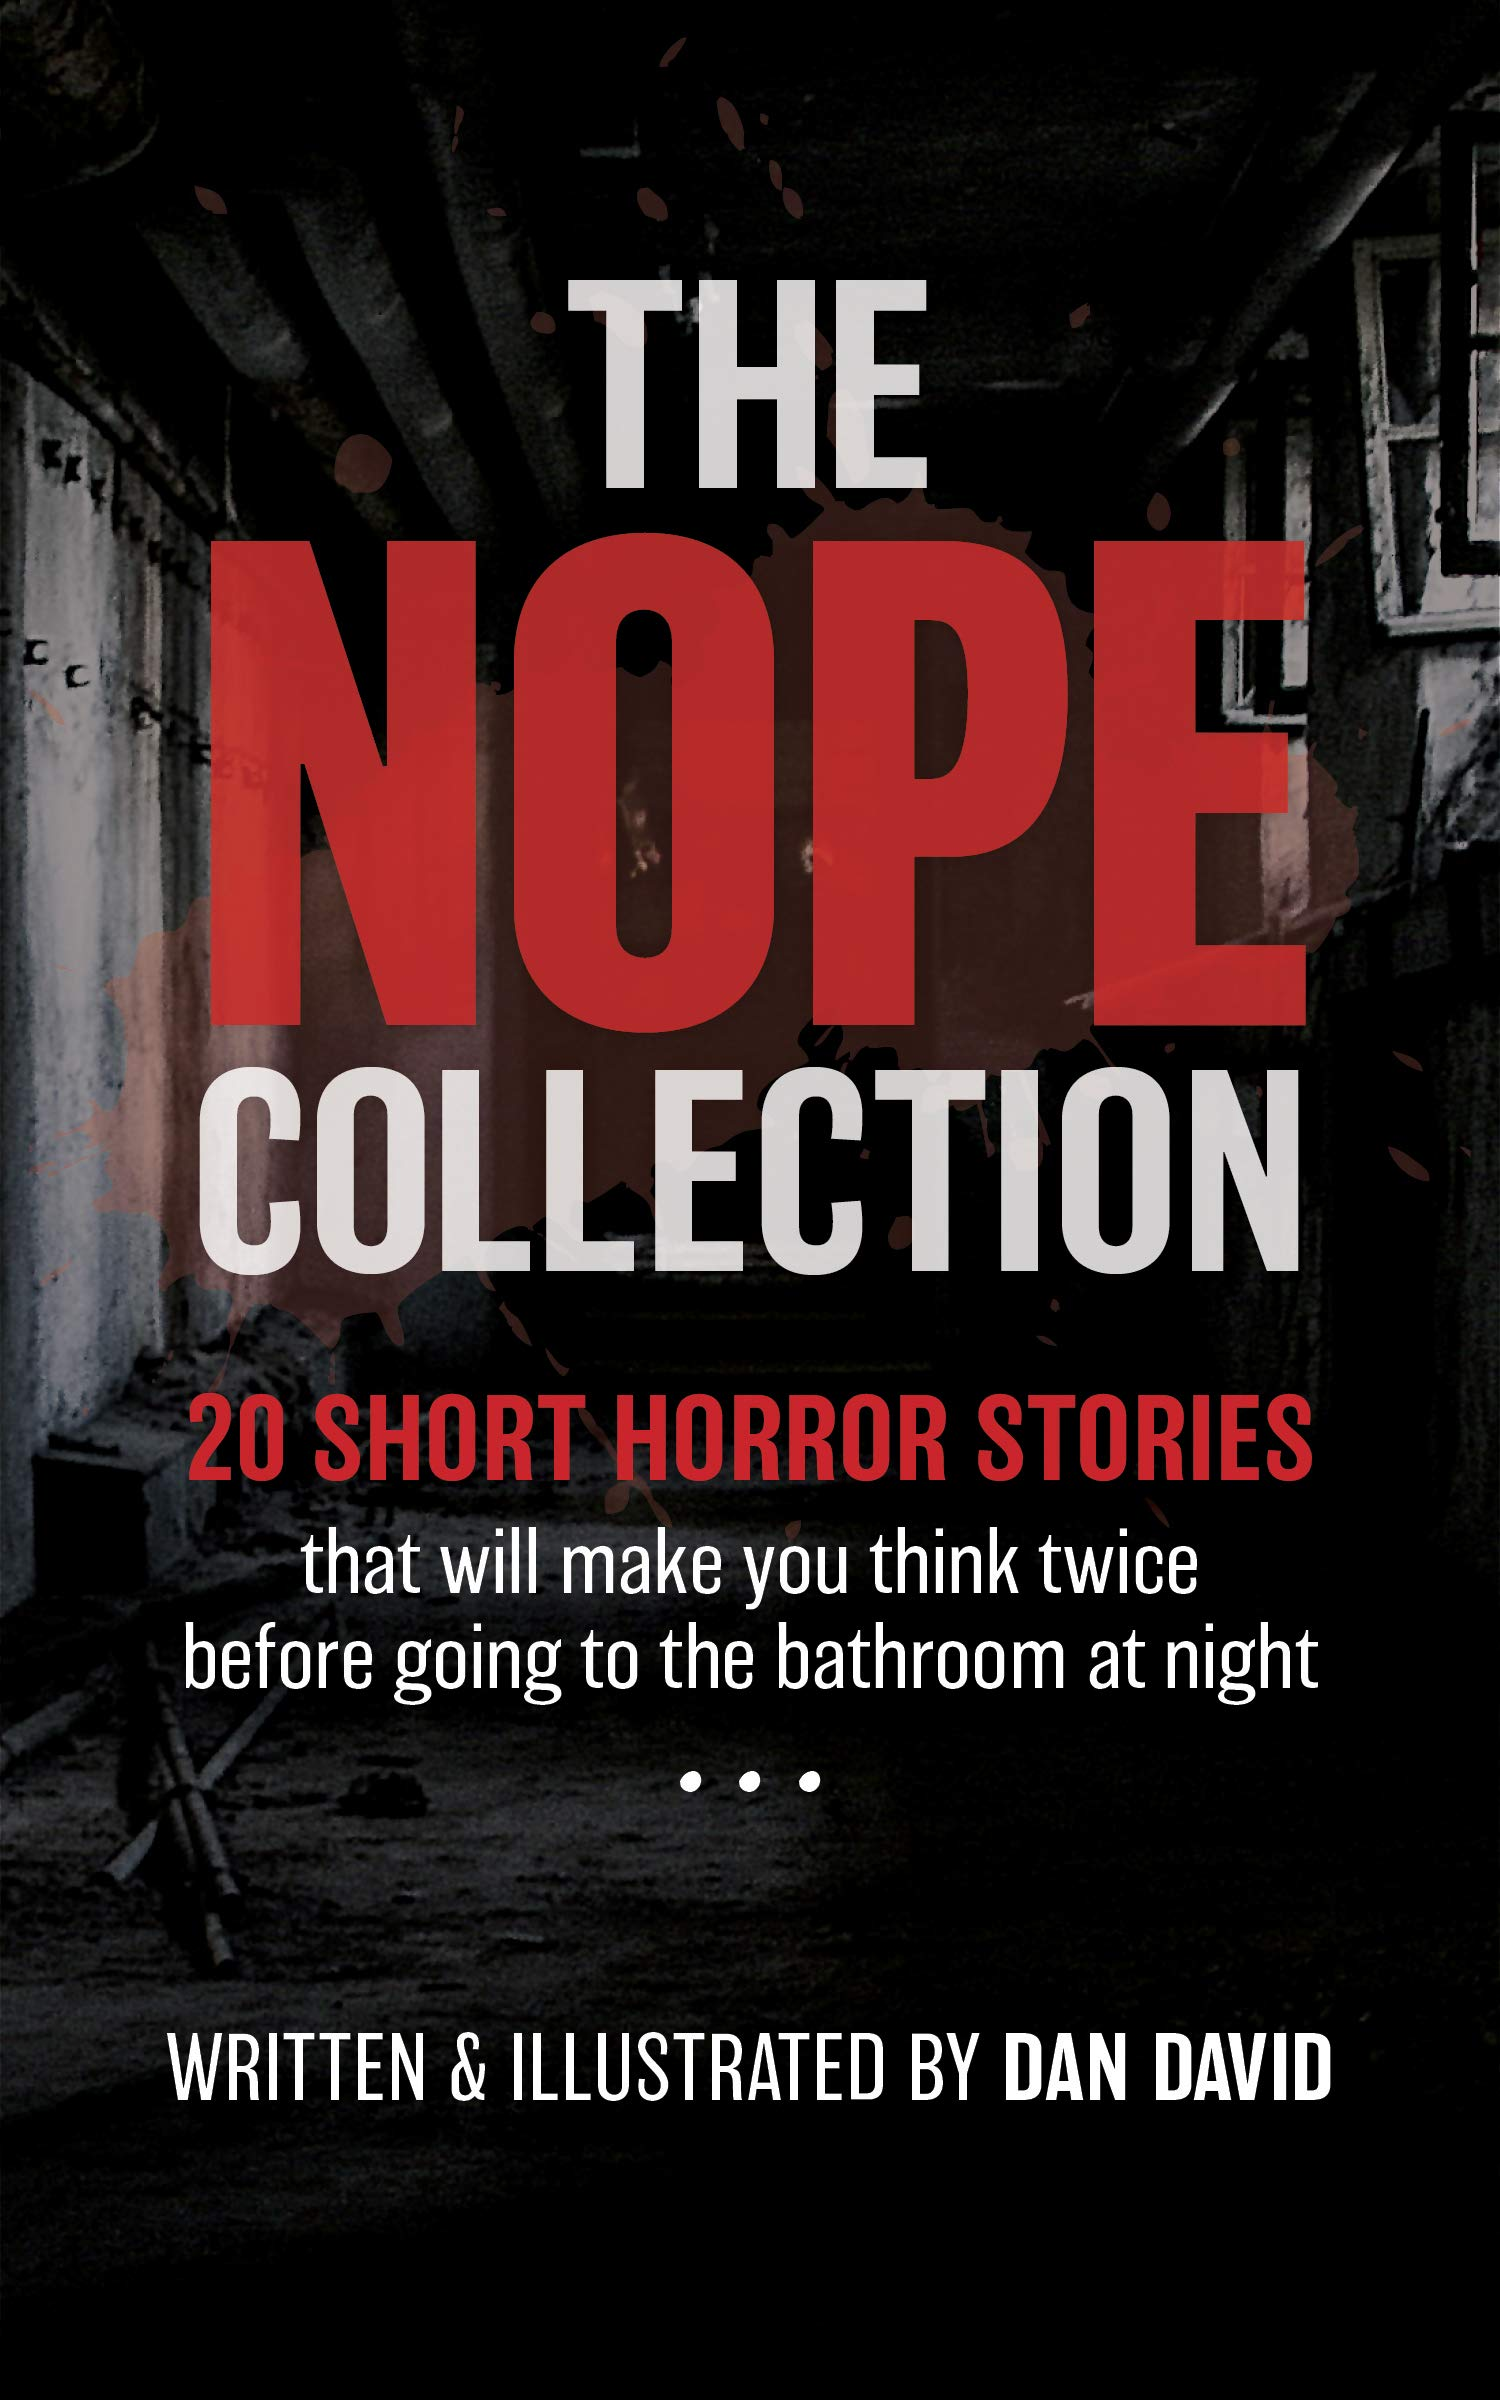 The NOPE Collection: 20 Short Horror Stories